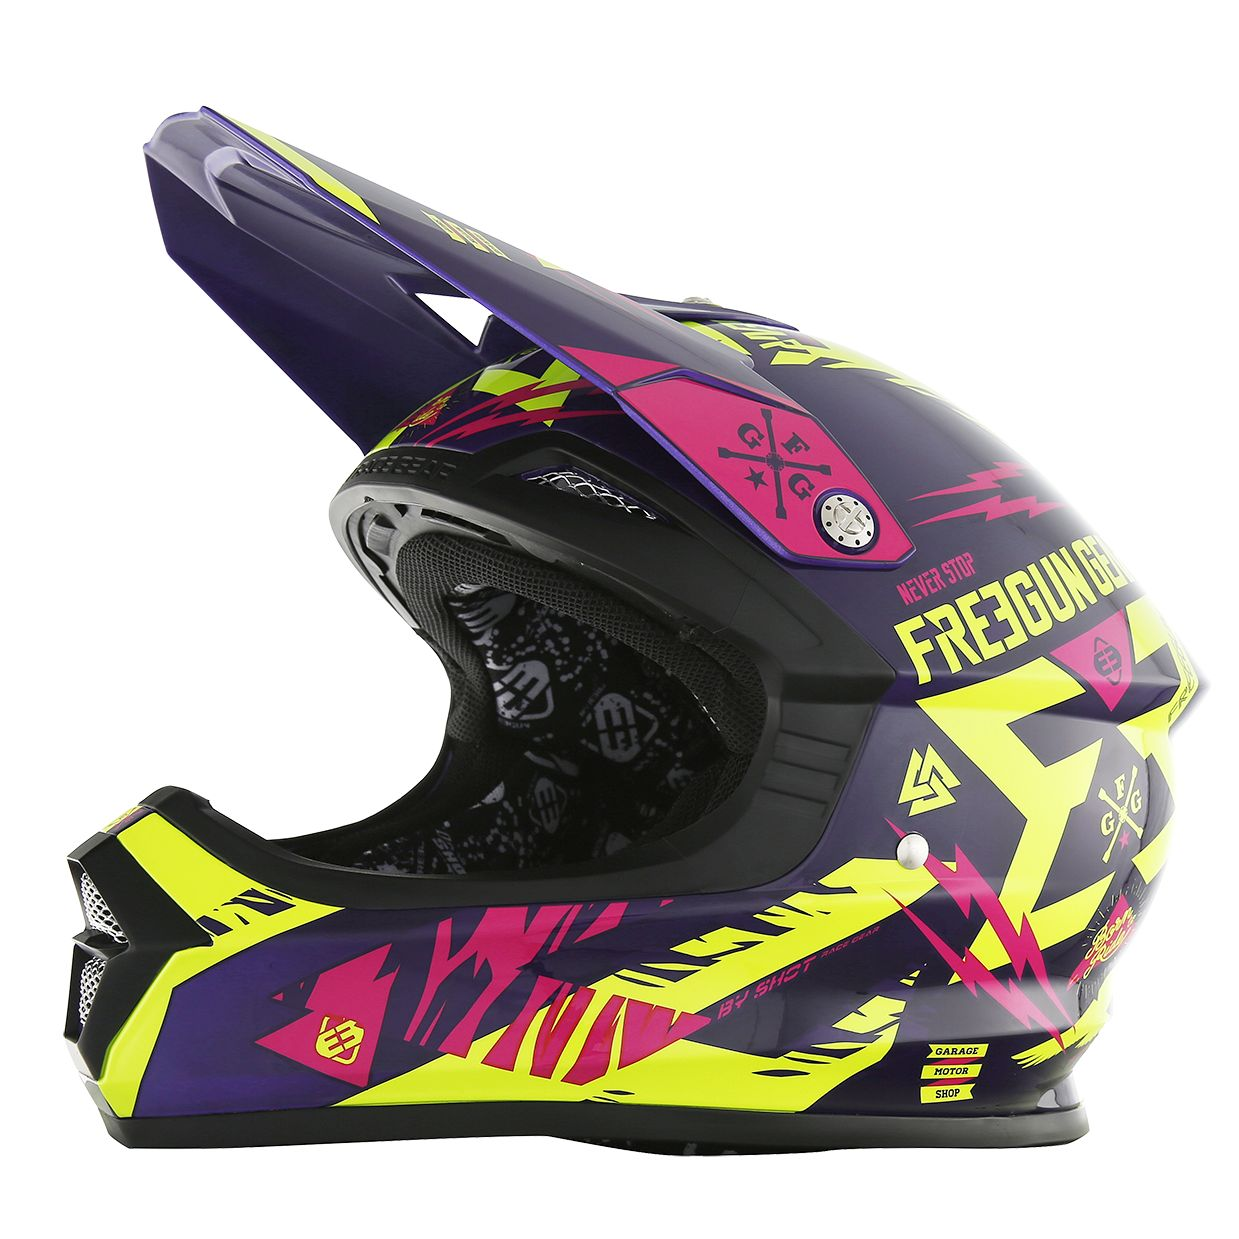 Casque cross Shot destockage XP4 TROOPER NEON JAUNE MAGENTA ENFANT